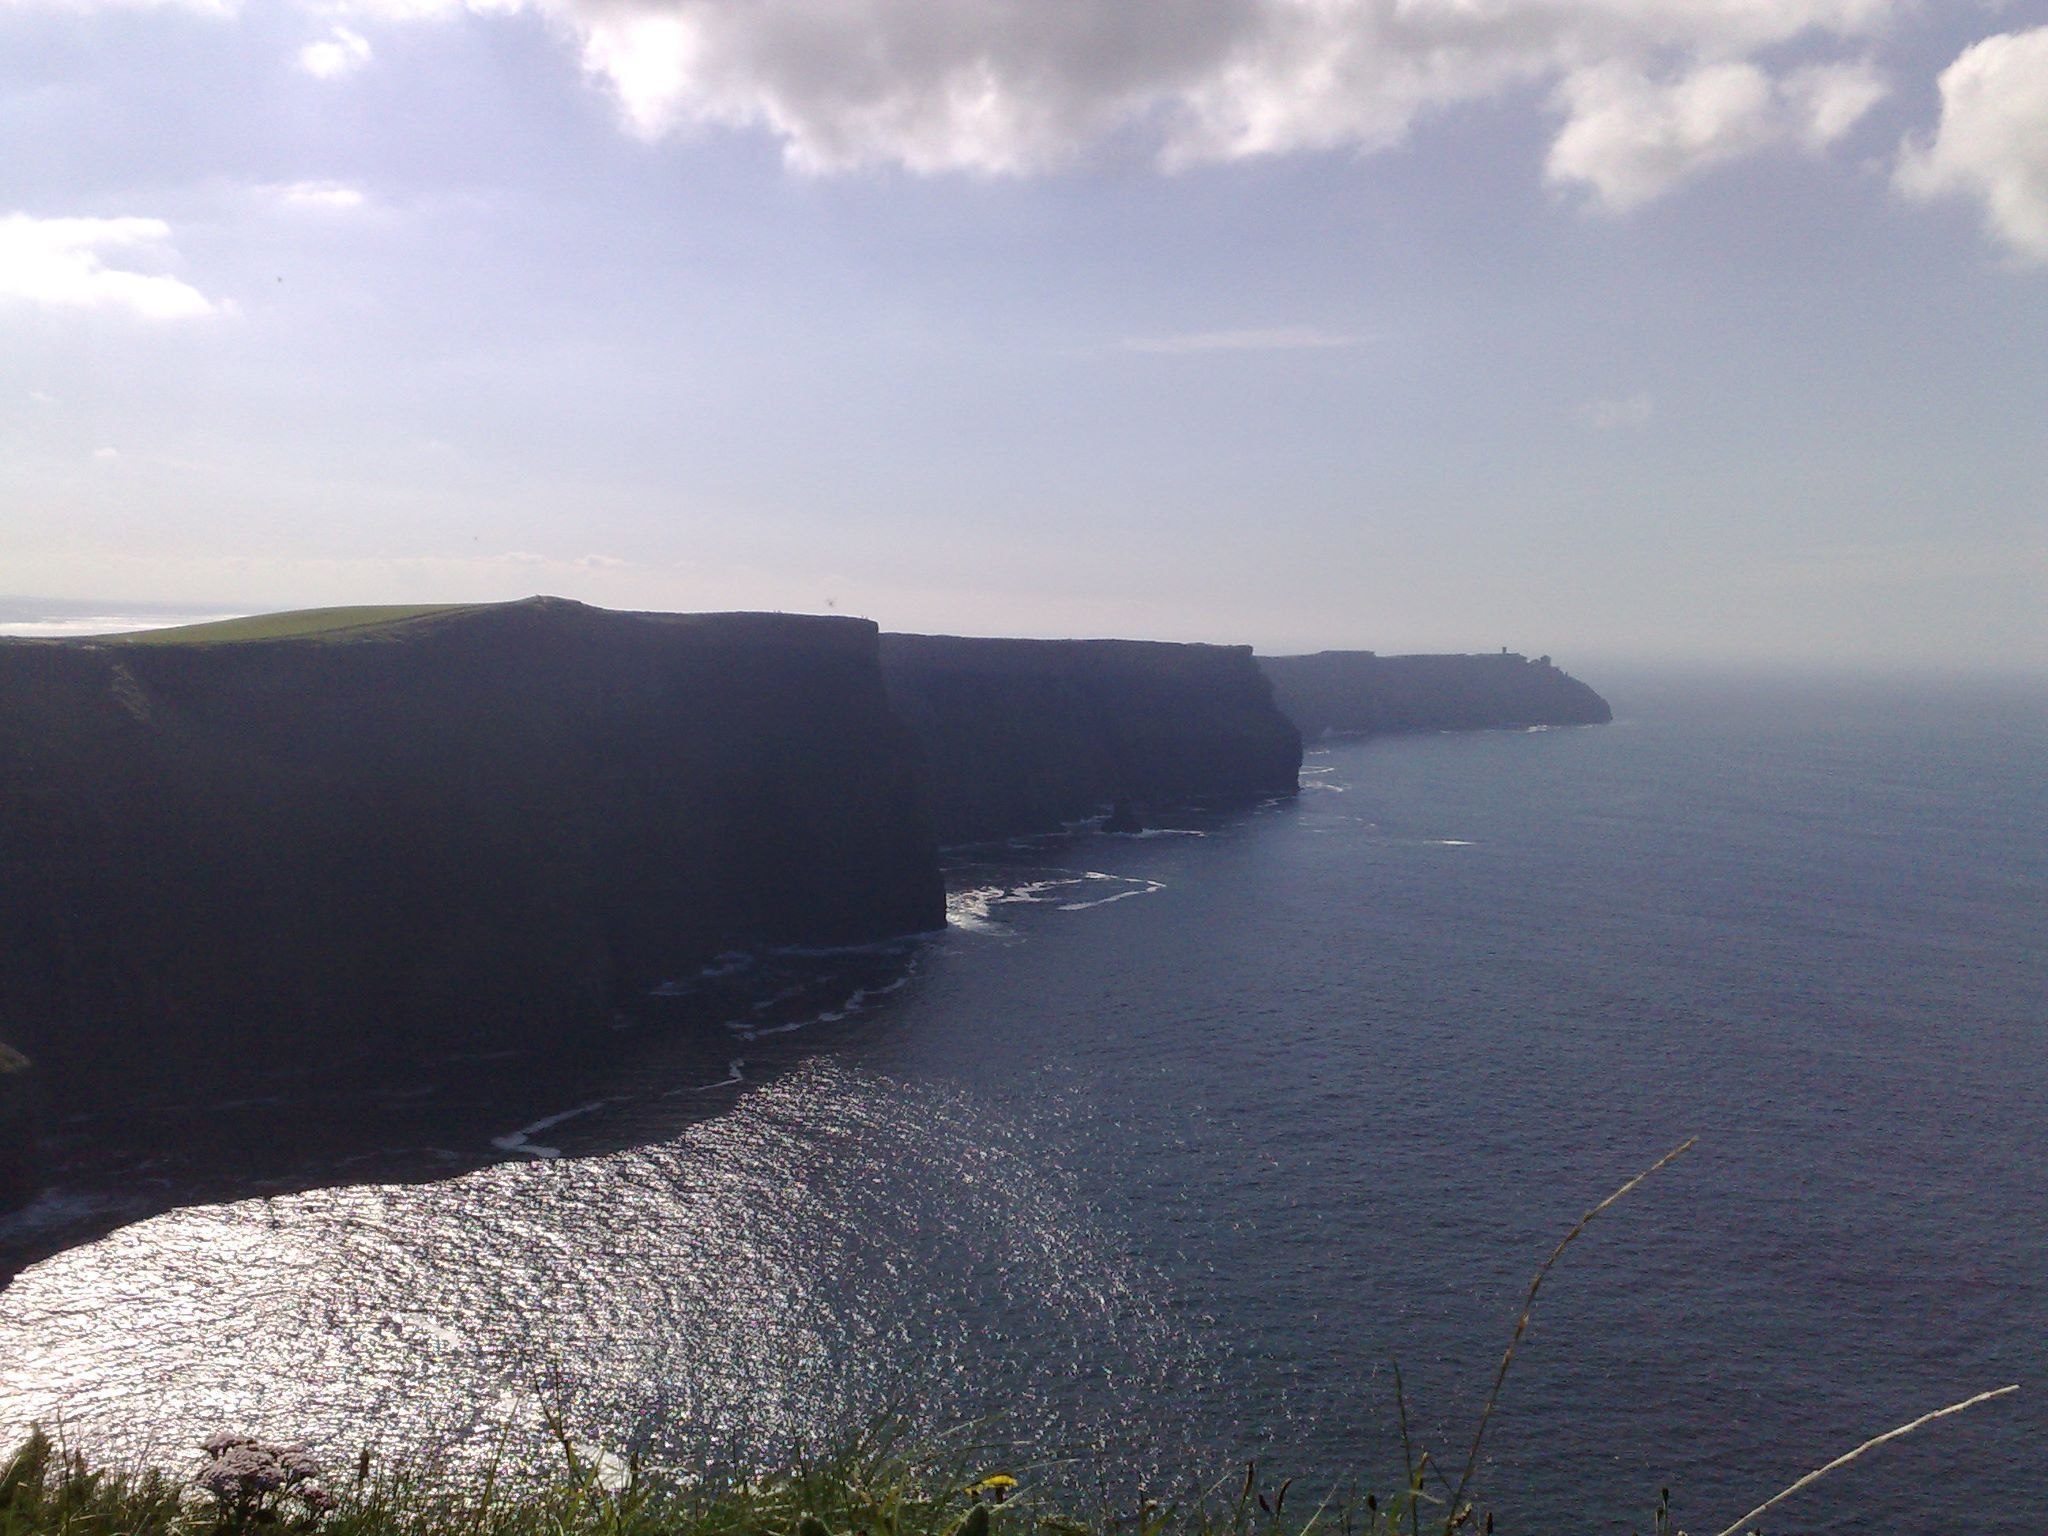 The Cliffs of Moher Romantic in a very dramatic way